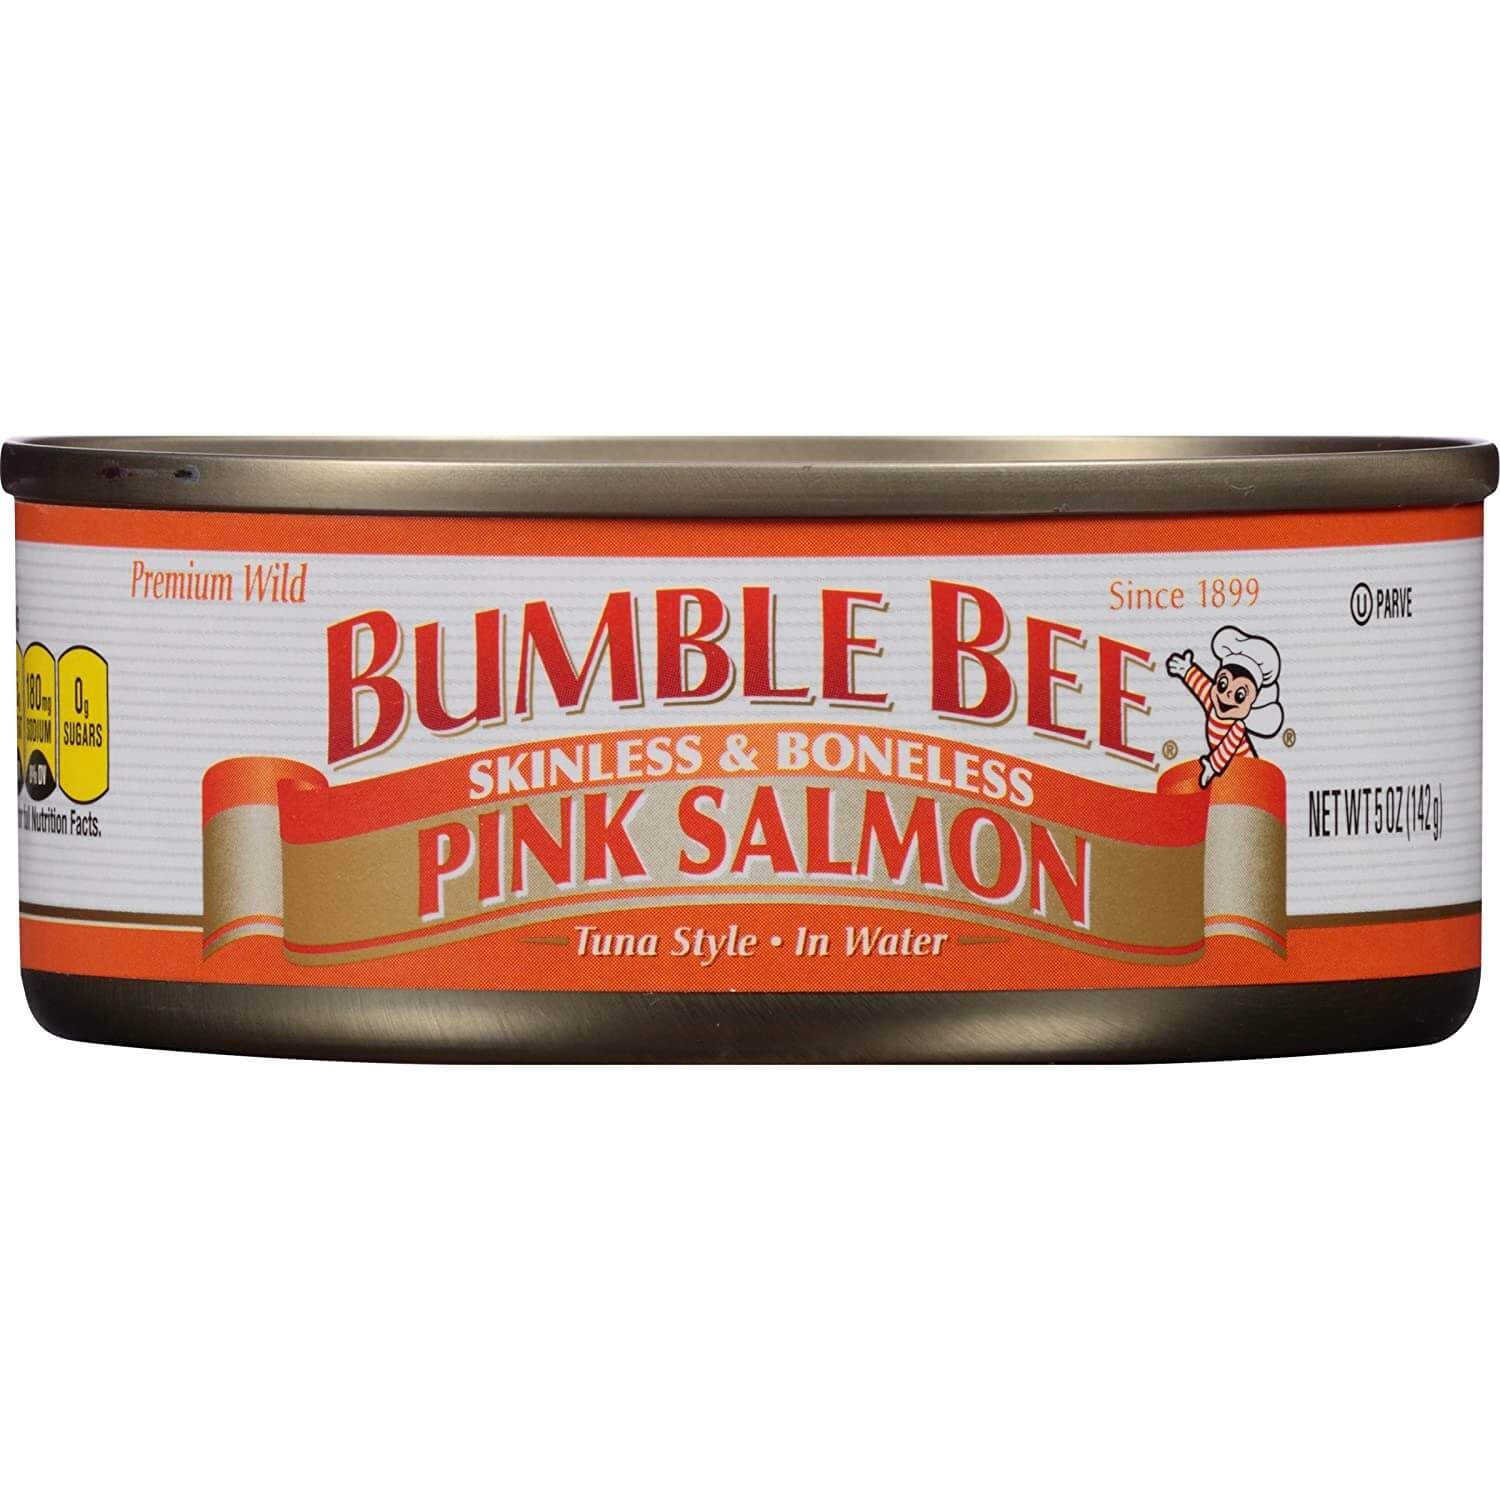 Bumble Bee Skinless and Boneless Pink Salmon